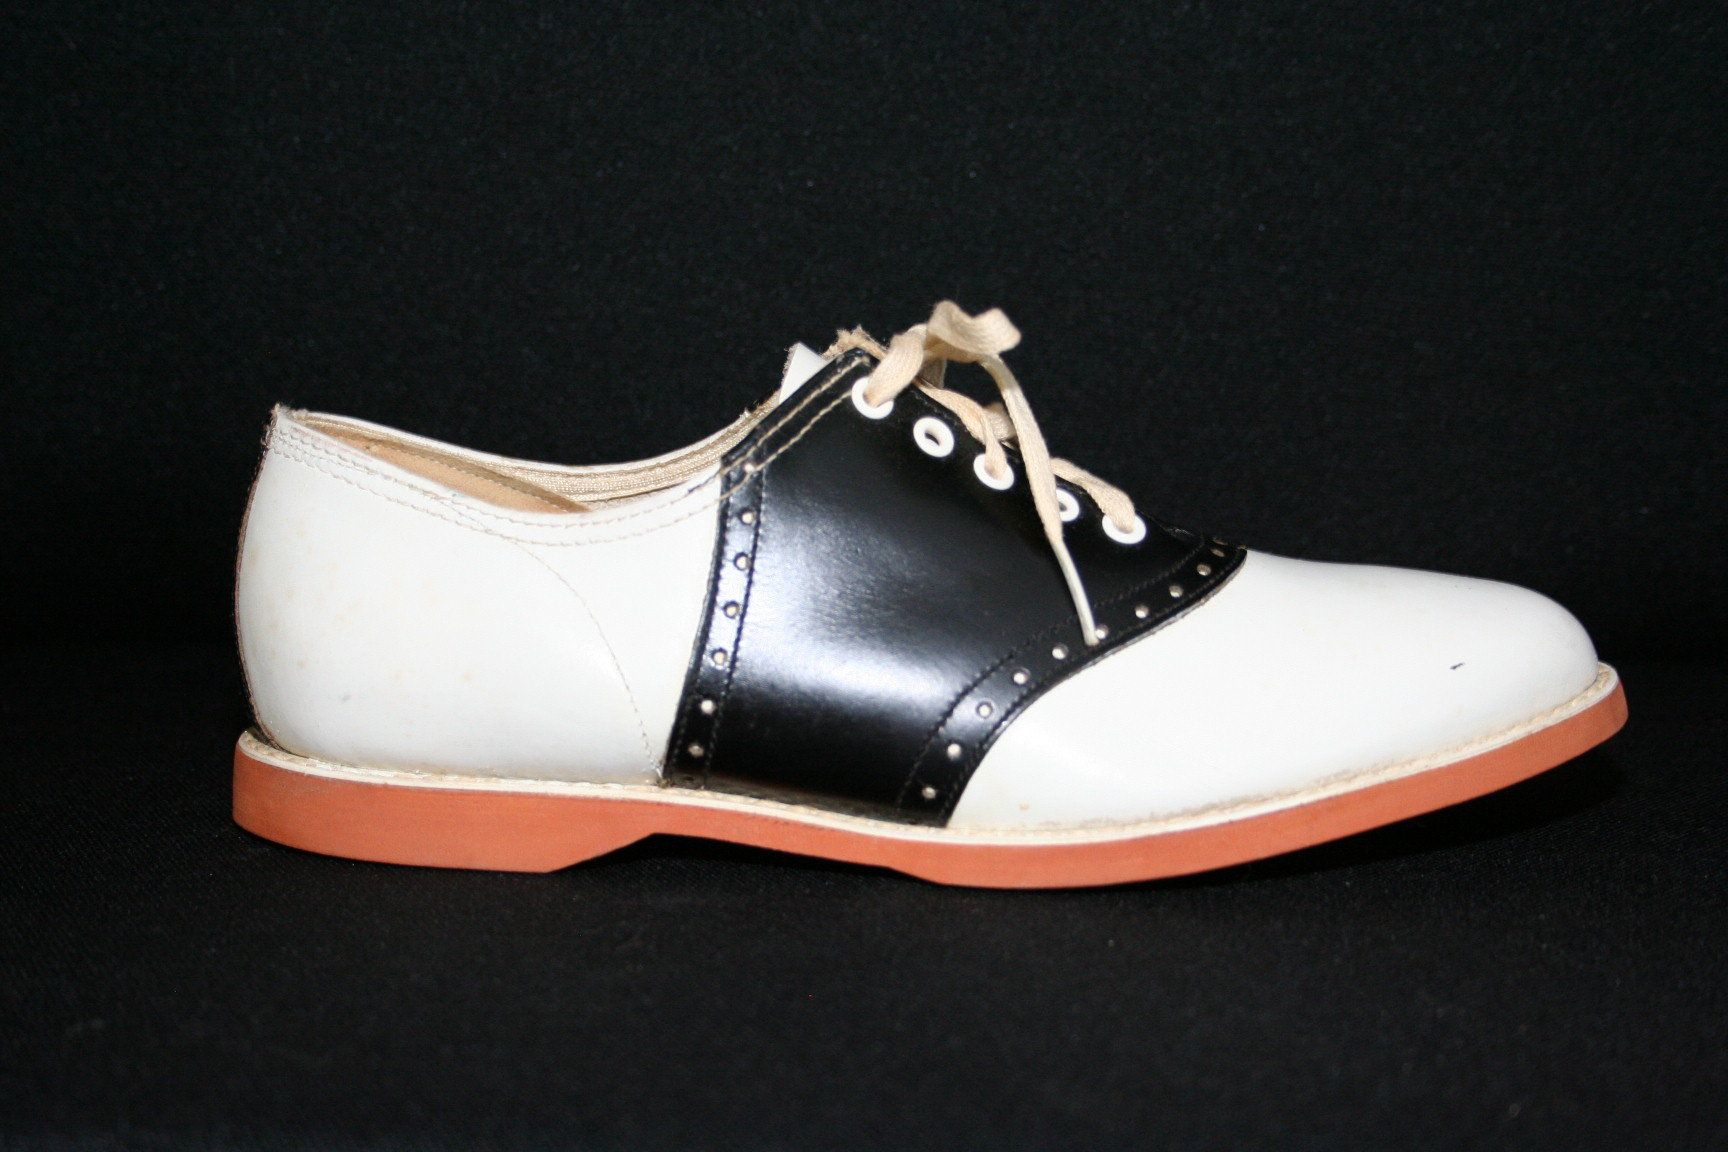 1950s Saddle Shoes. Vintage Shoes